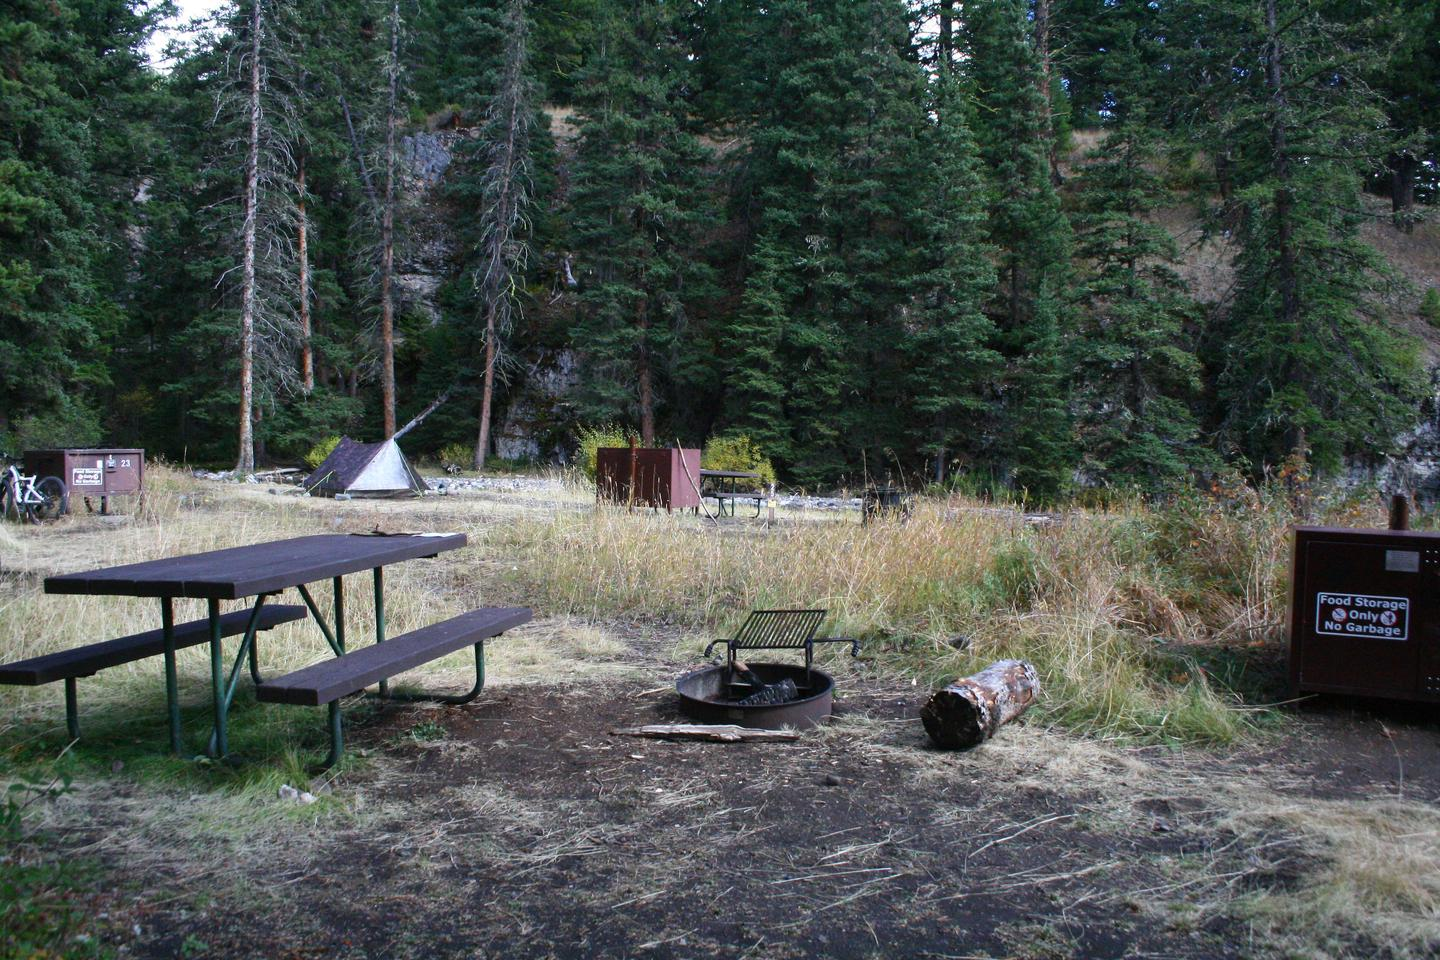 Pebble Creek Campground Site #22.Pebble Creek Campground Site #22 - walk-in site